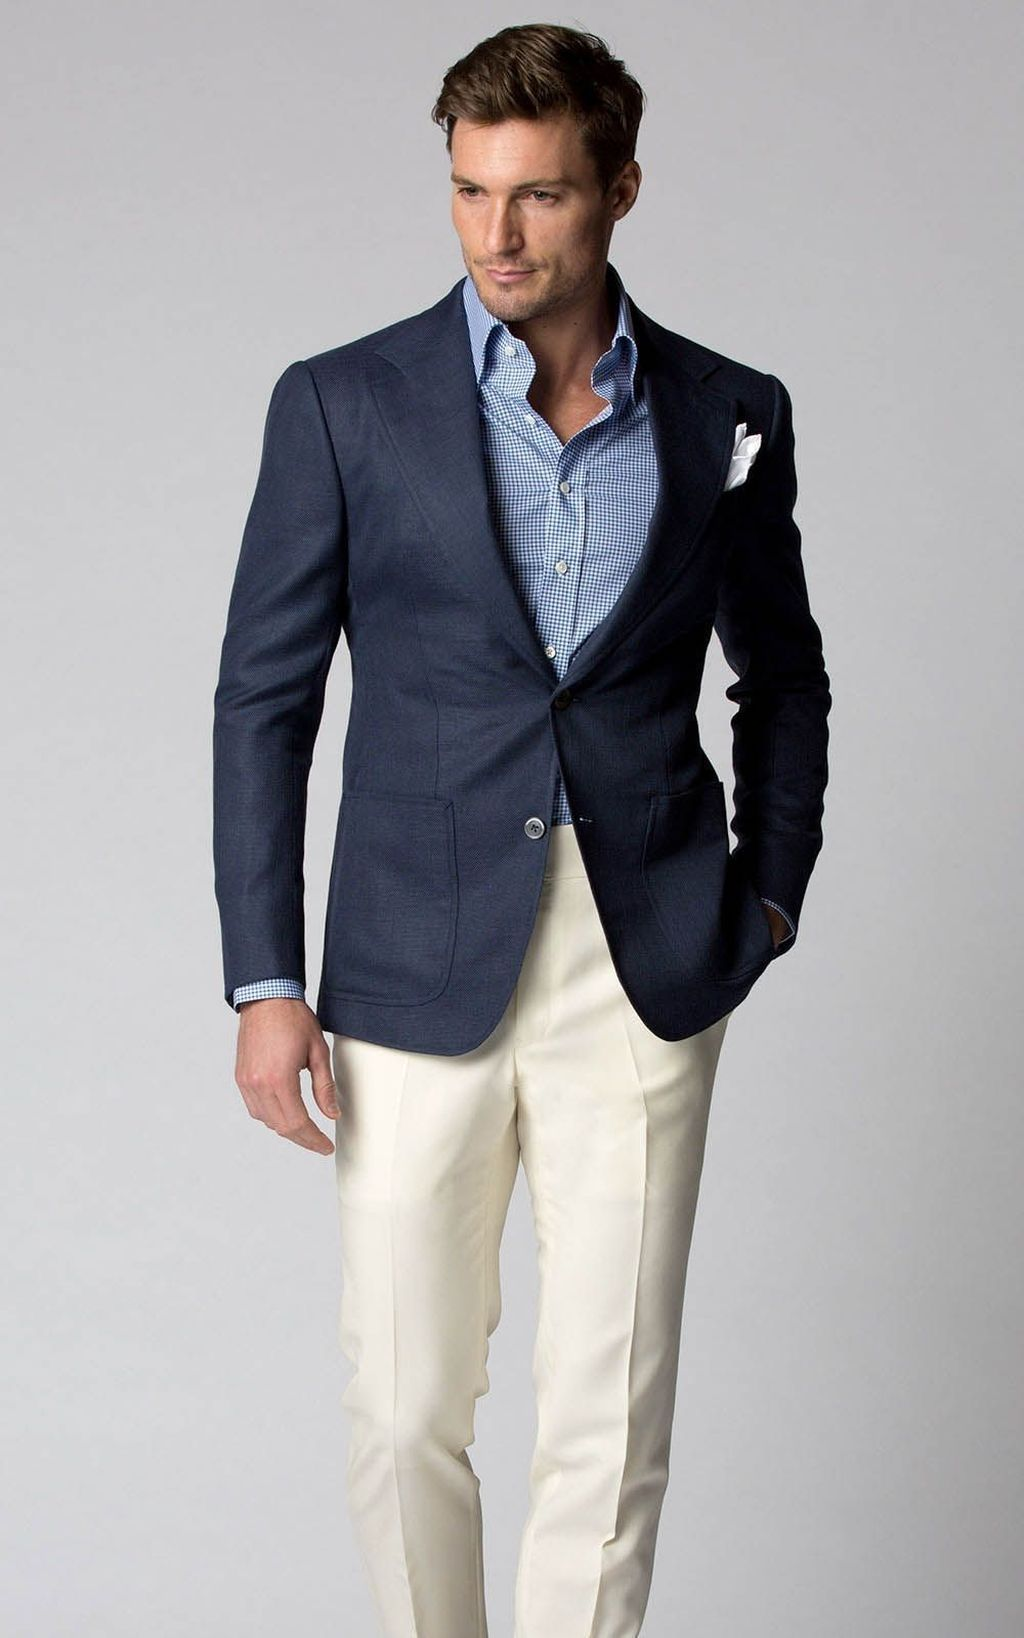 30+ Impressive Men Sport Coat Jeans Ideas in 2020 Blazer